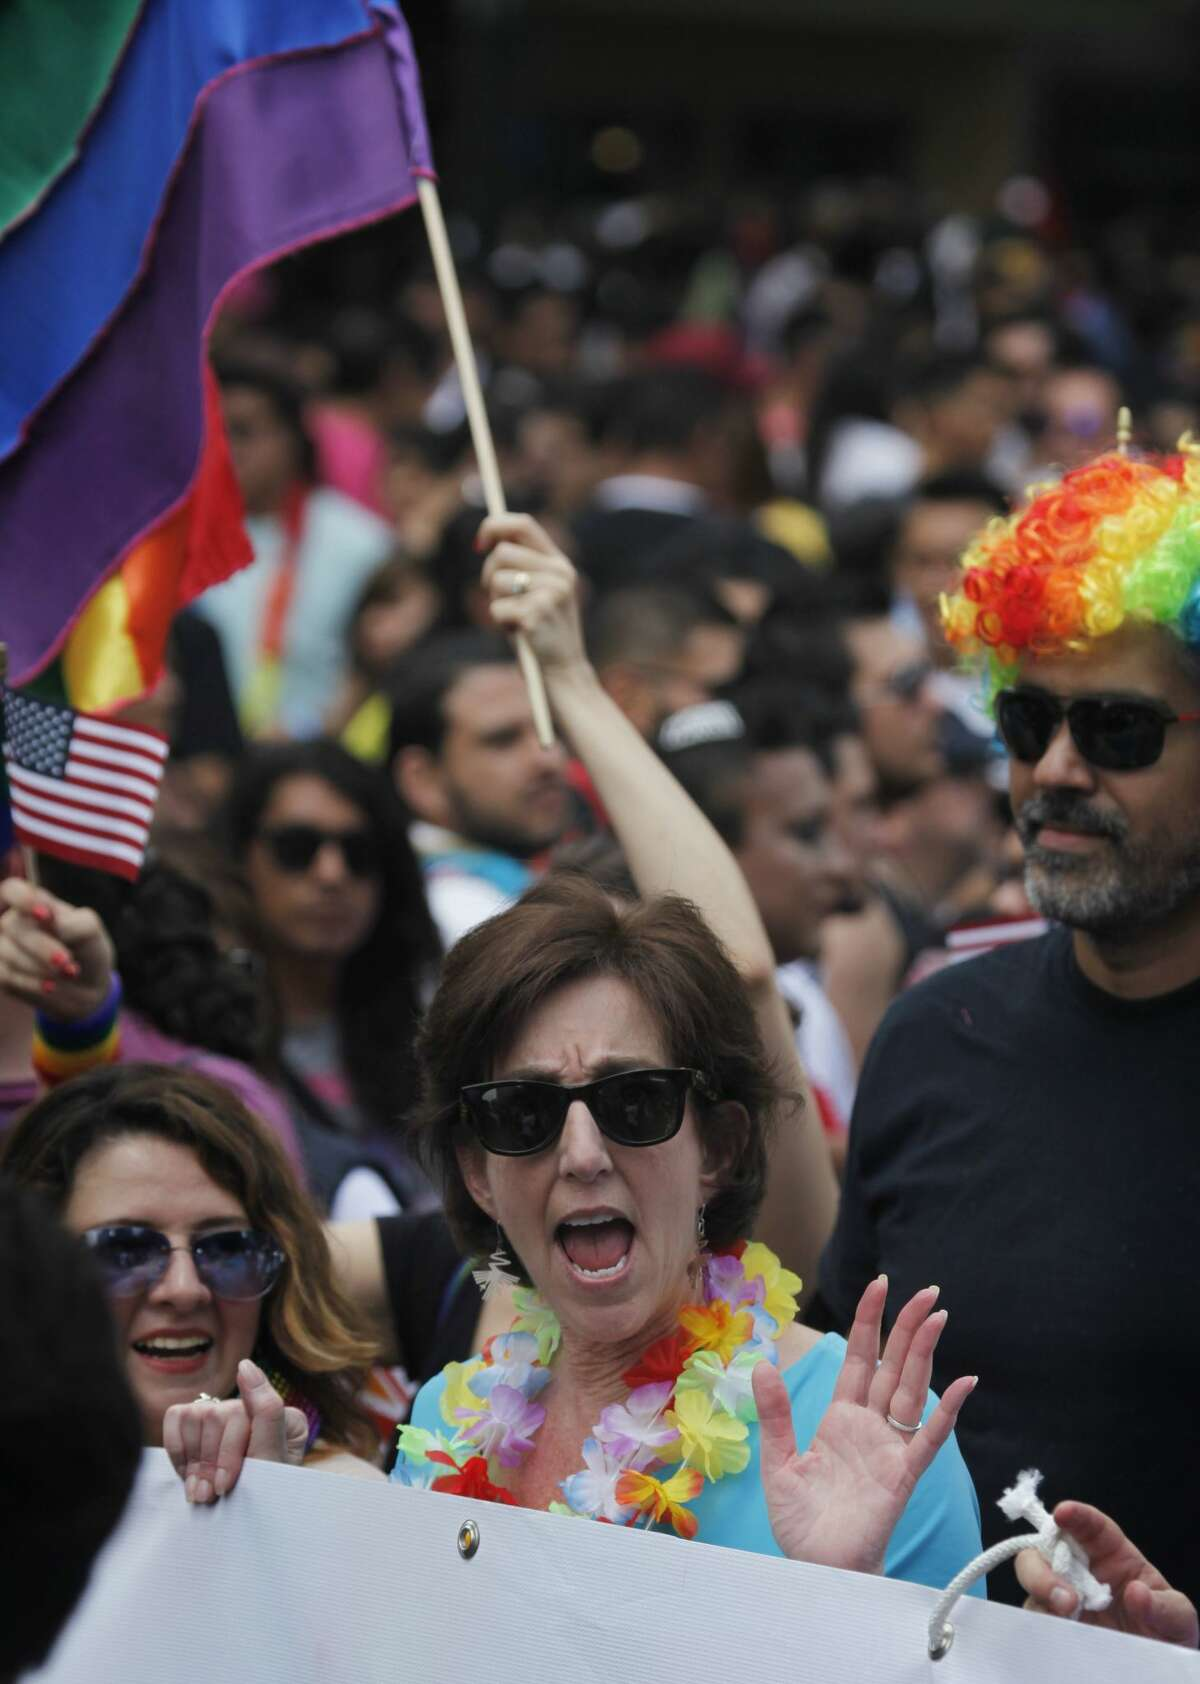 Roberta Jacobson, U.S. ambassador in Mexico, waves while marching in Mexico City's gay pride parade. Thousands of people marched down Paseo de la Reforma for one of the largest gay pride events in Latin America.